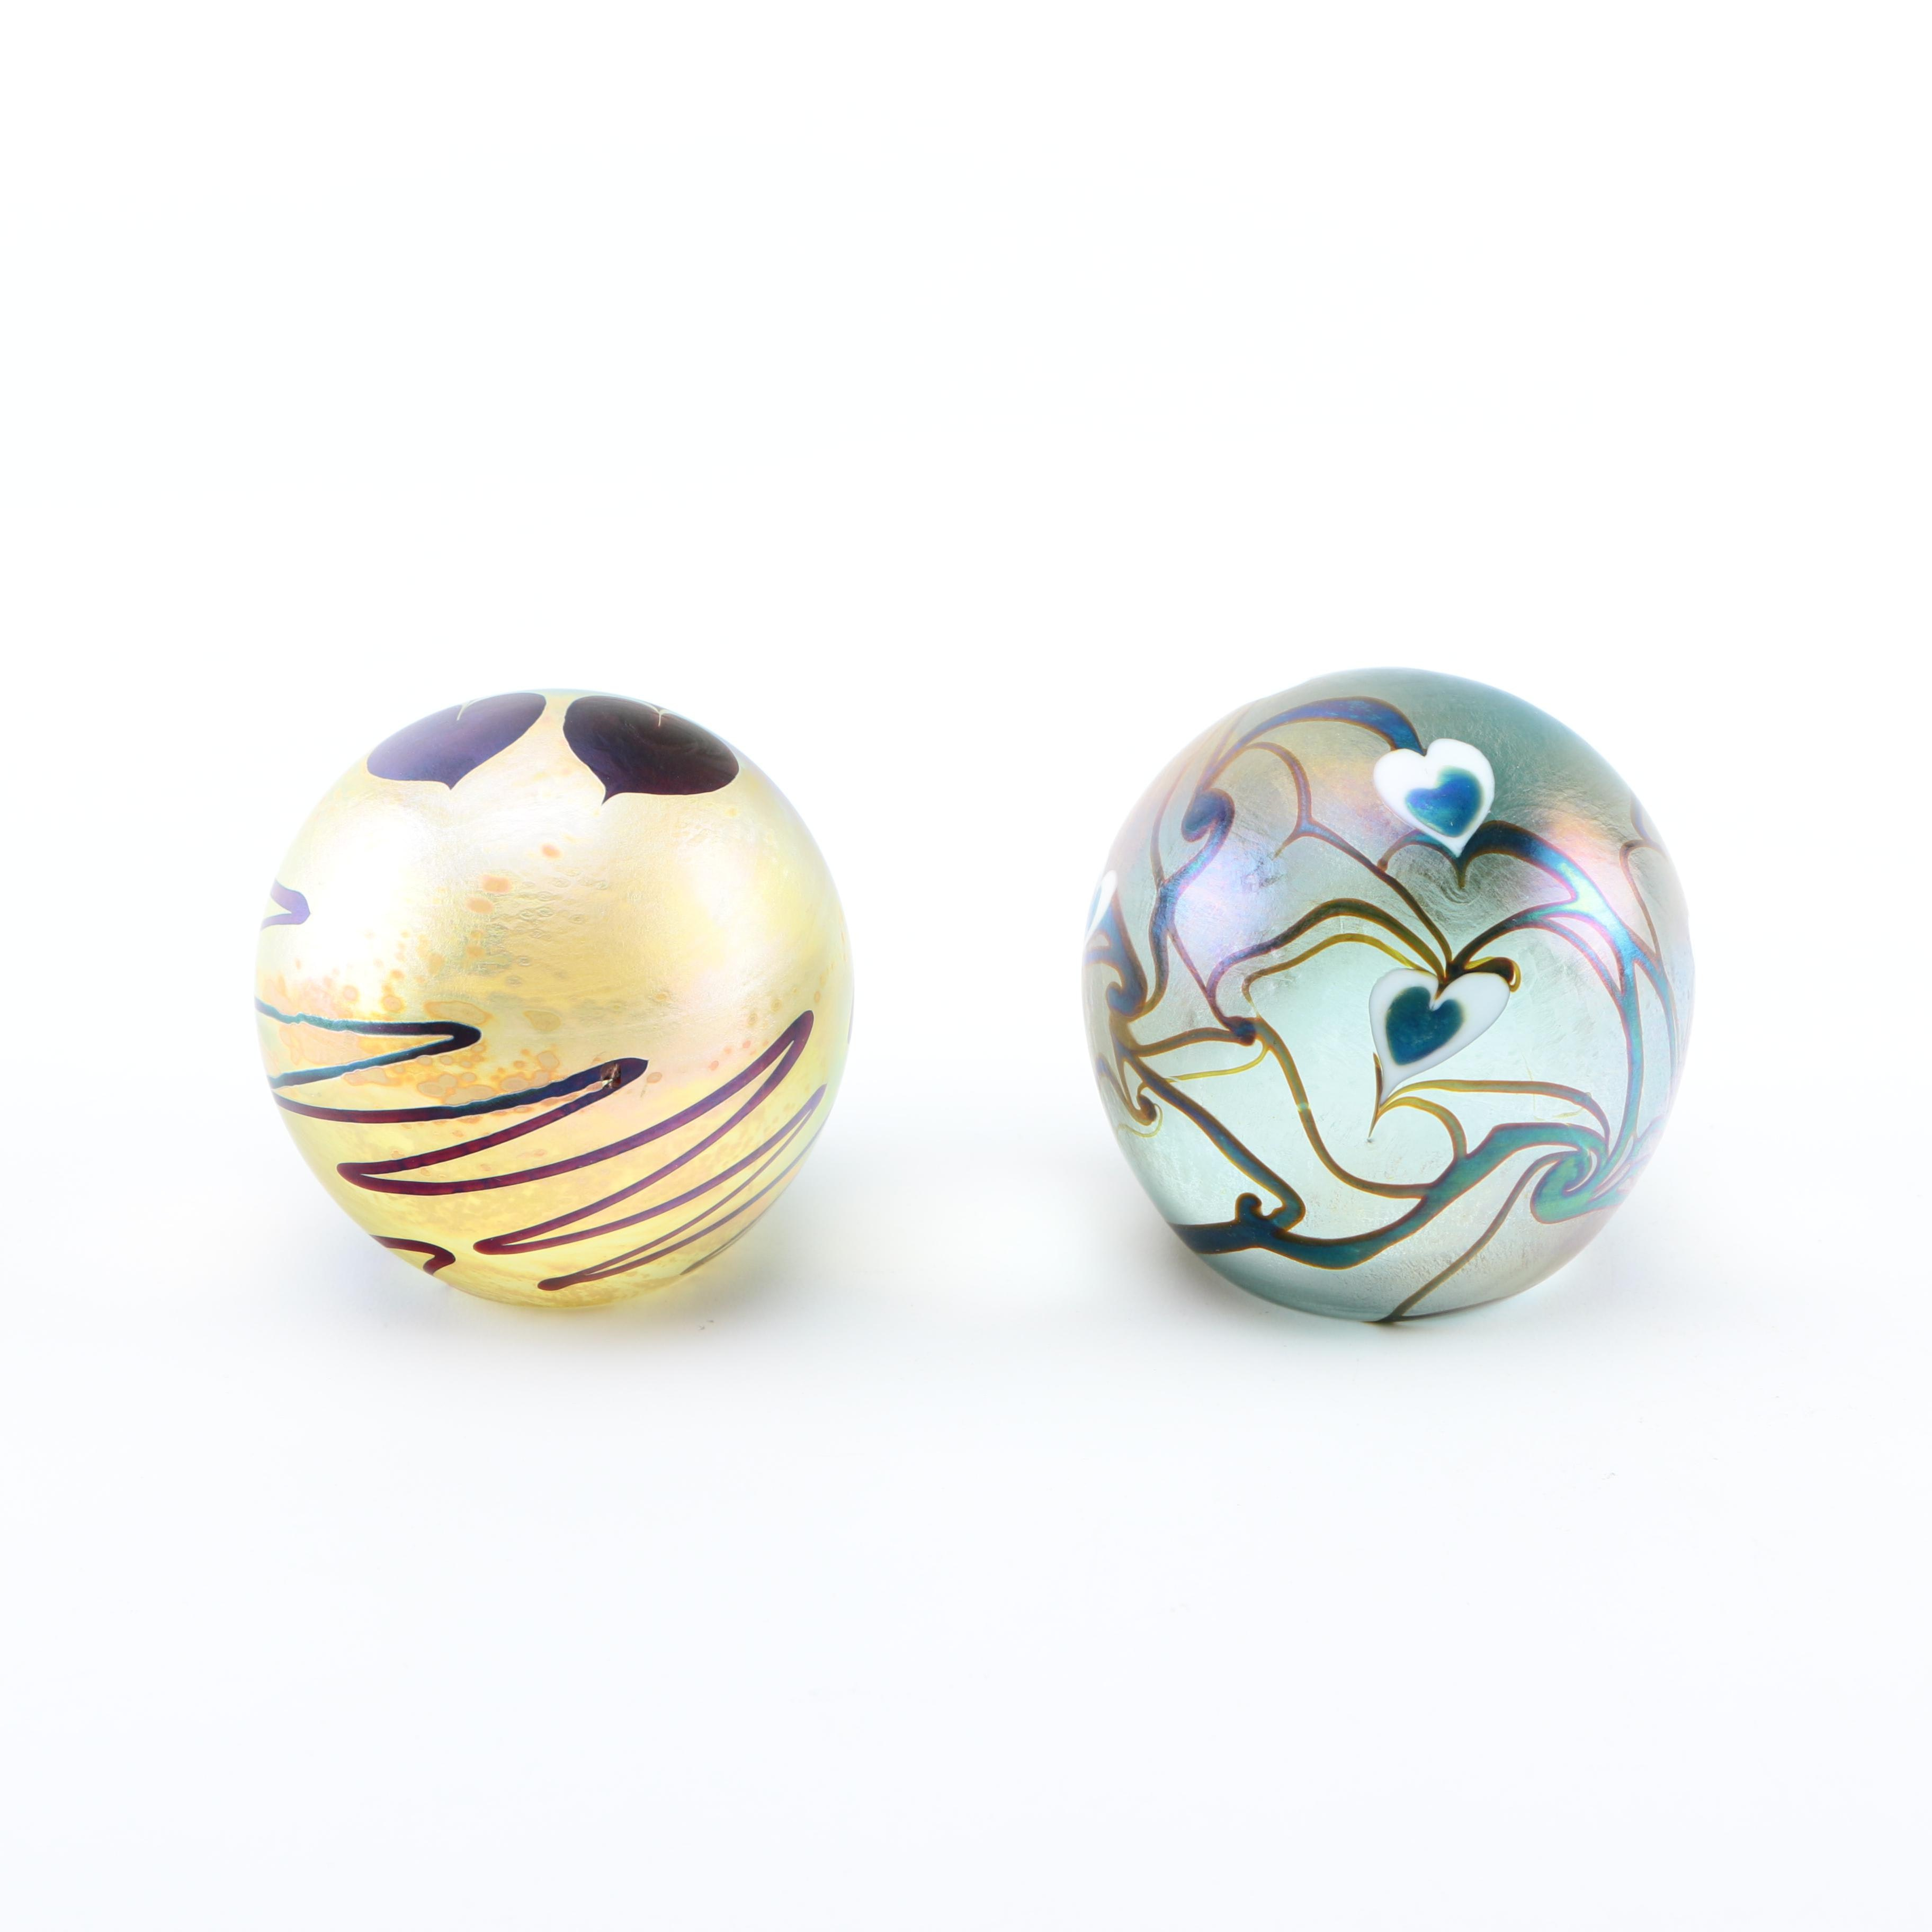 Two Artisan Signed Glass Paperweights including Eickholt and Vandermark